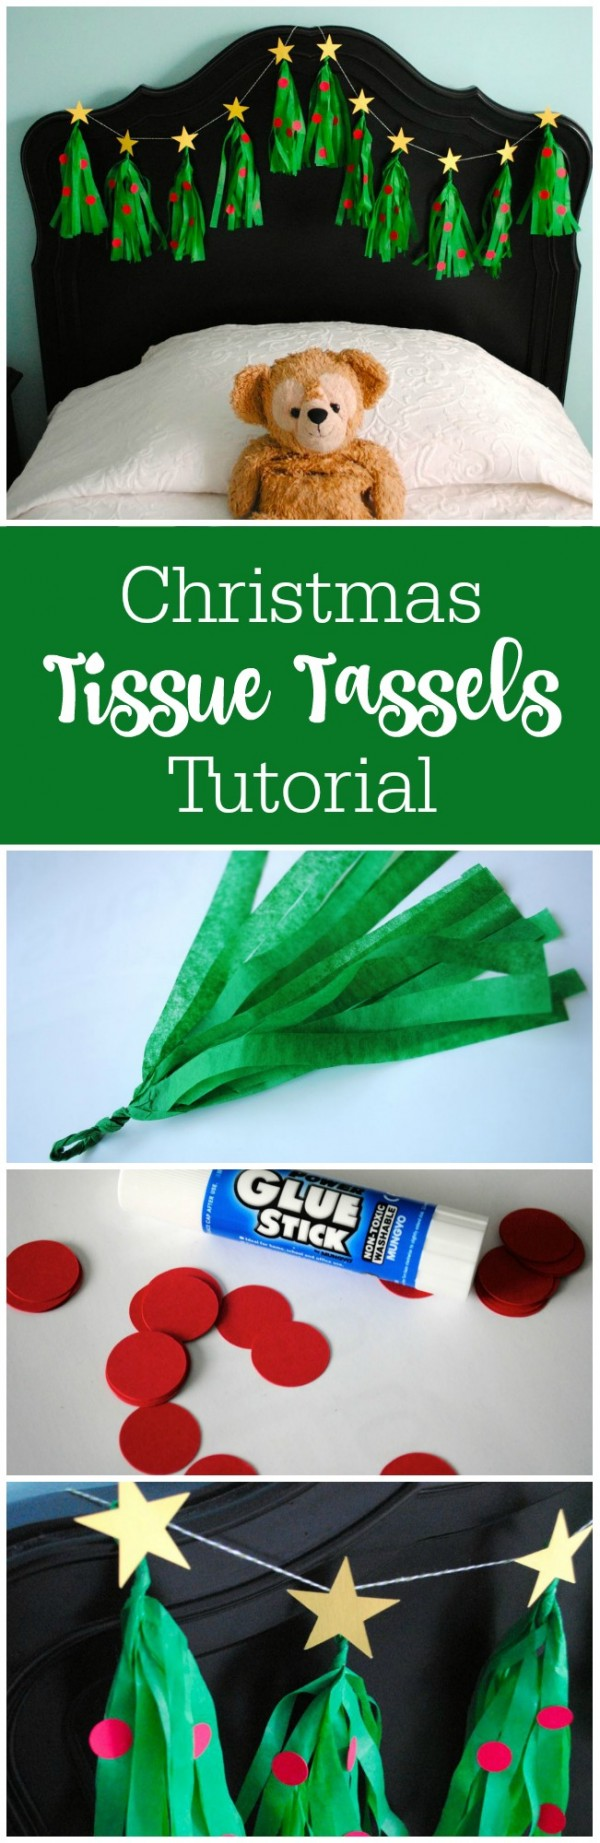 How to make Christmas tree tassel garland